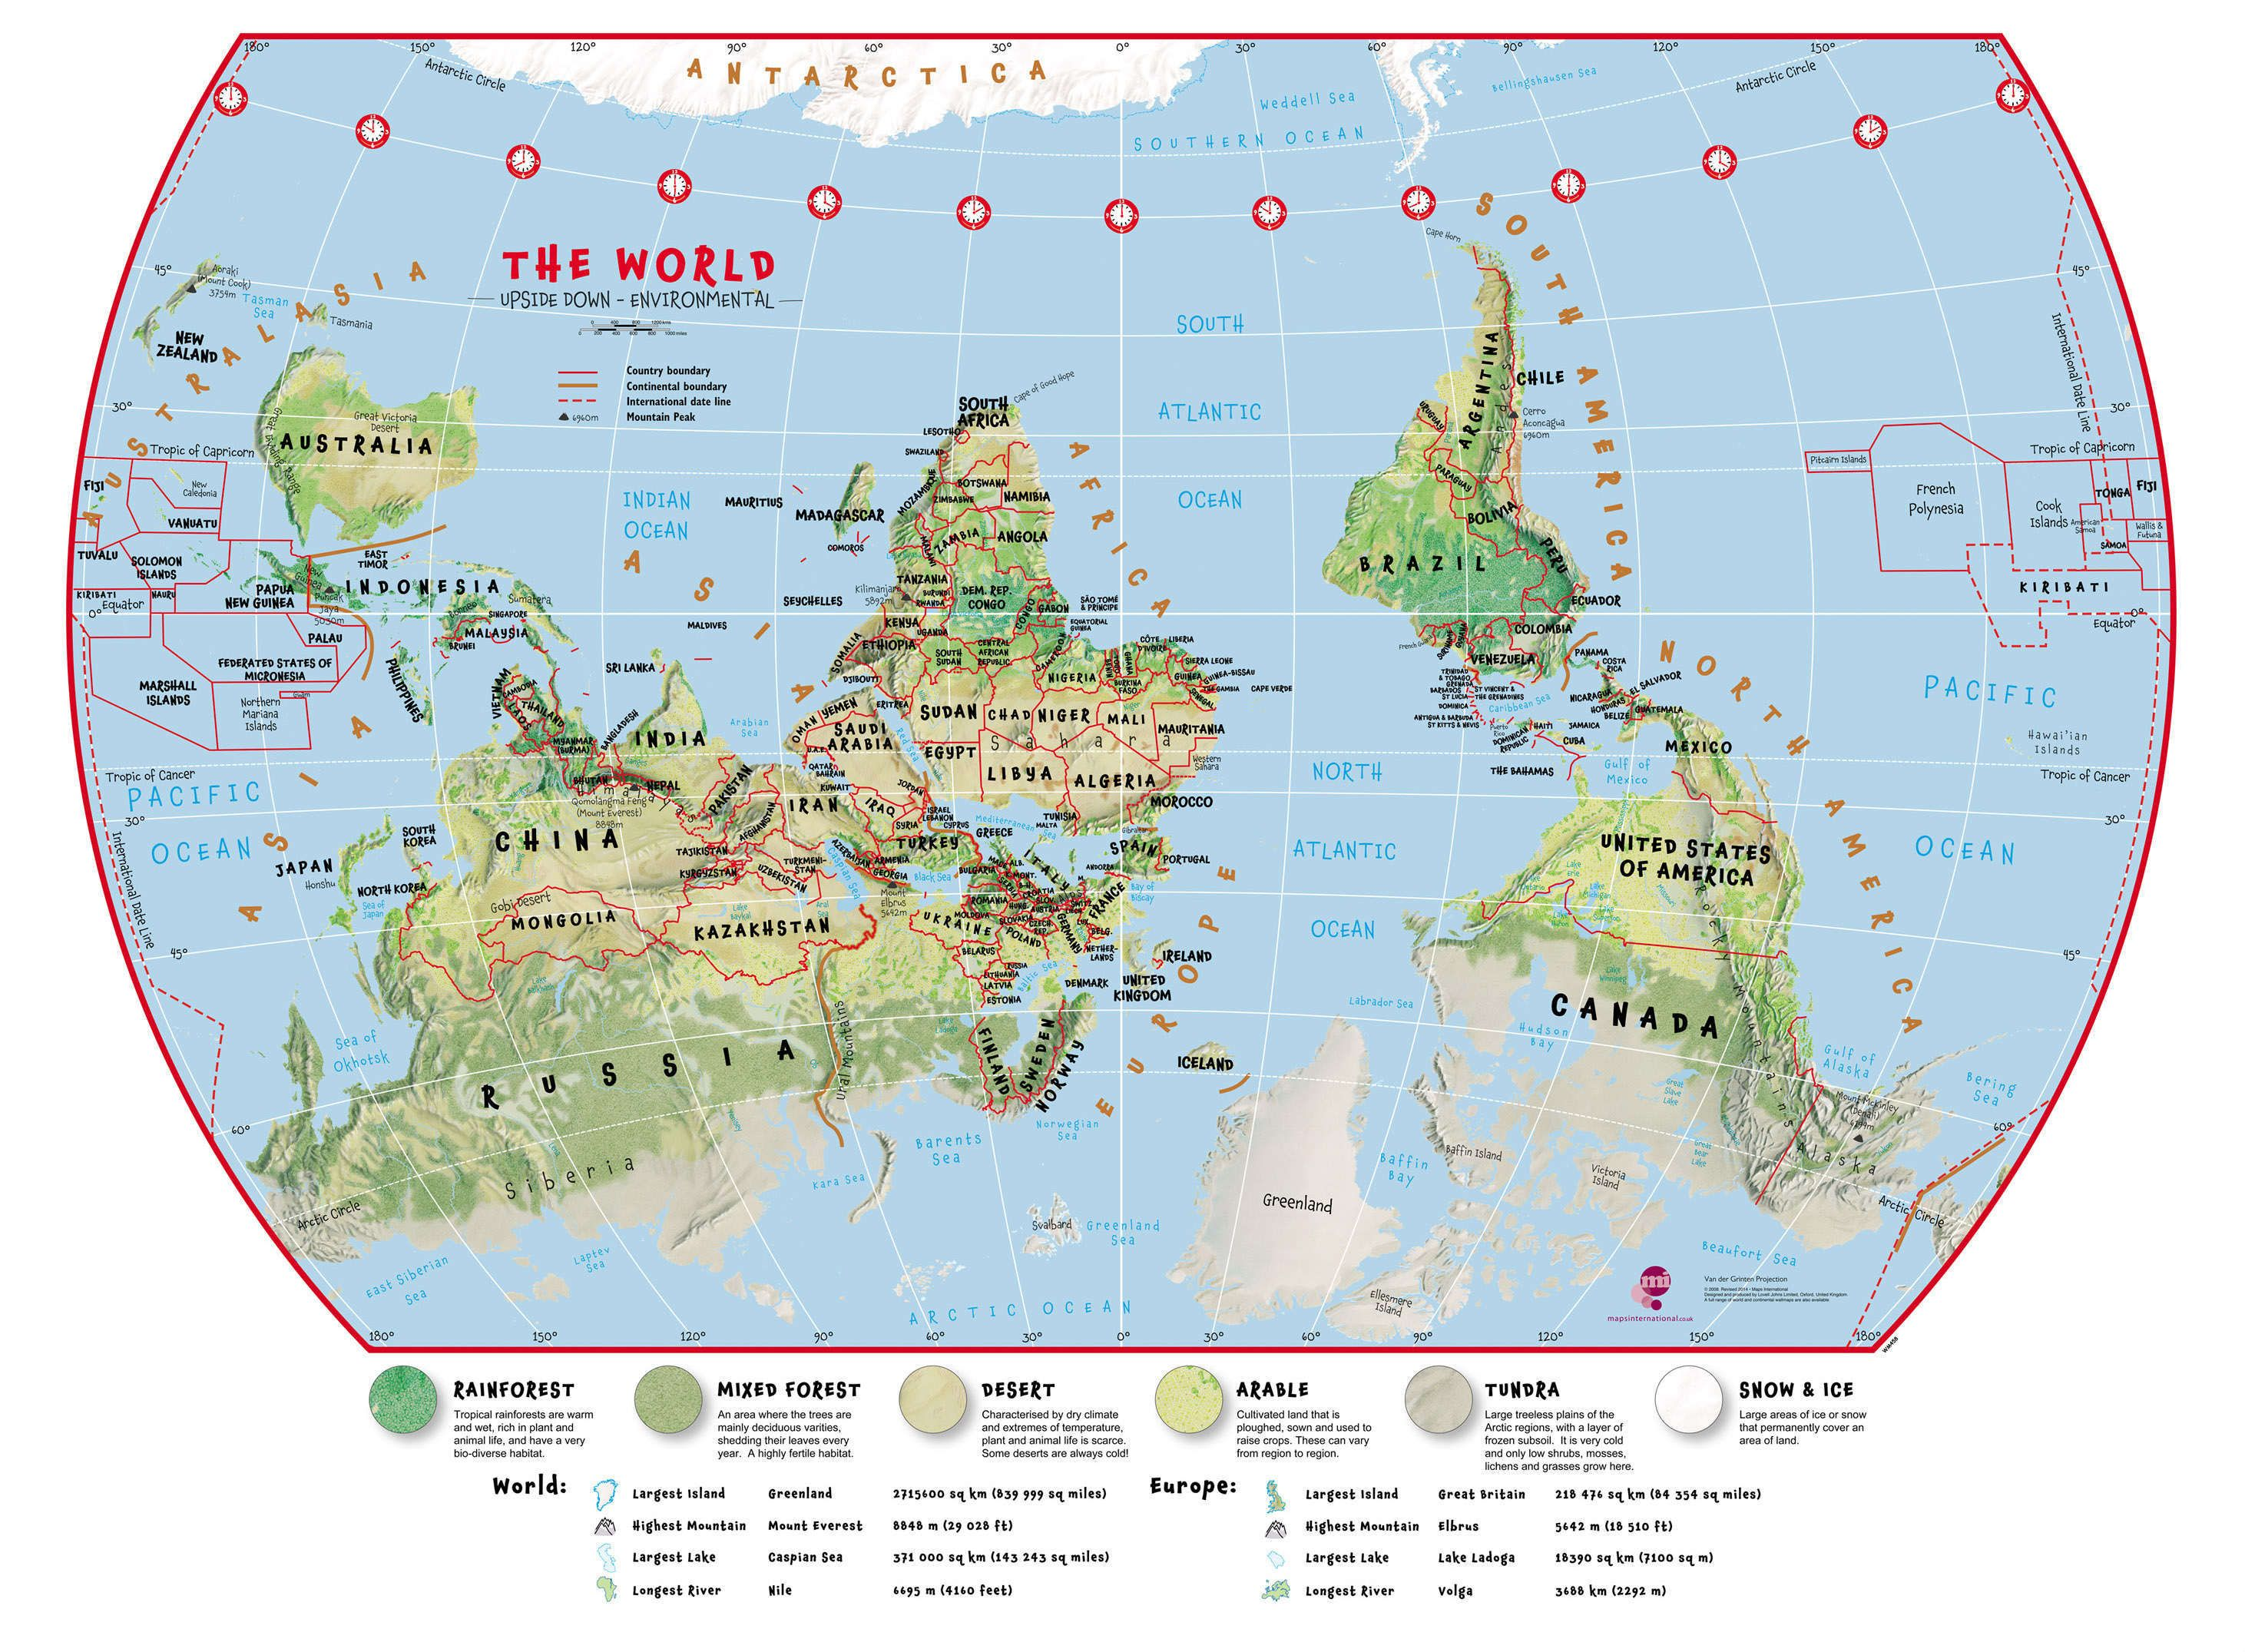 Upside Down Map Of The World Map Of The World Upside Down | Environment Map | Elementary School Map